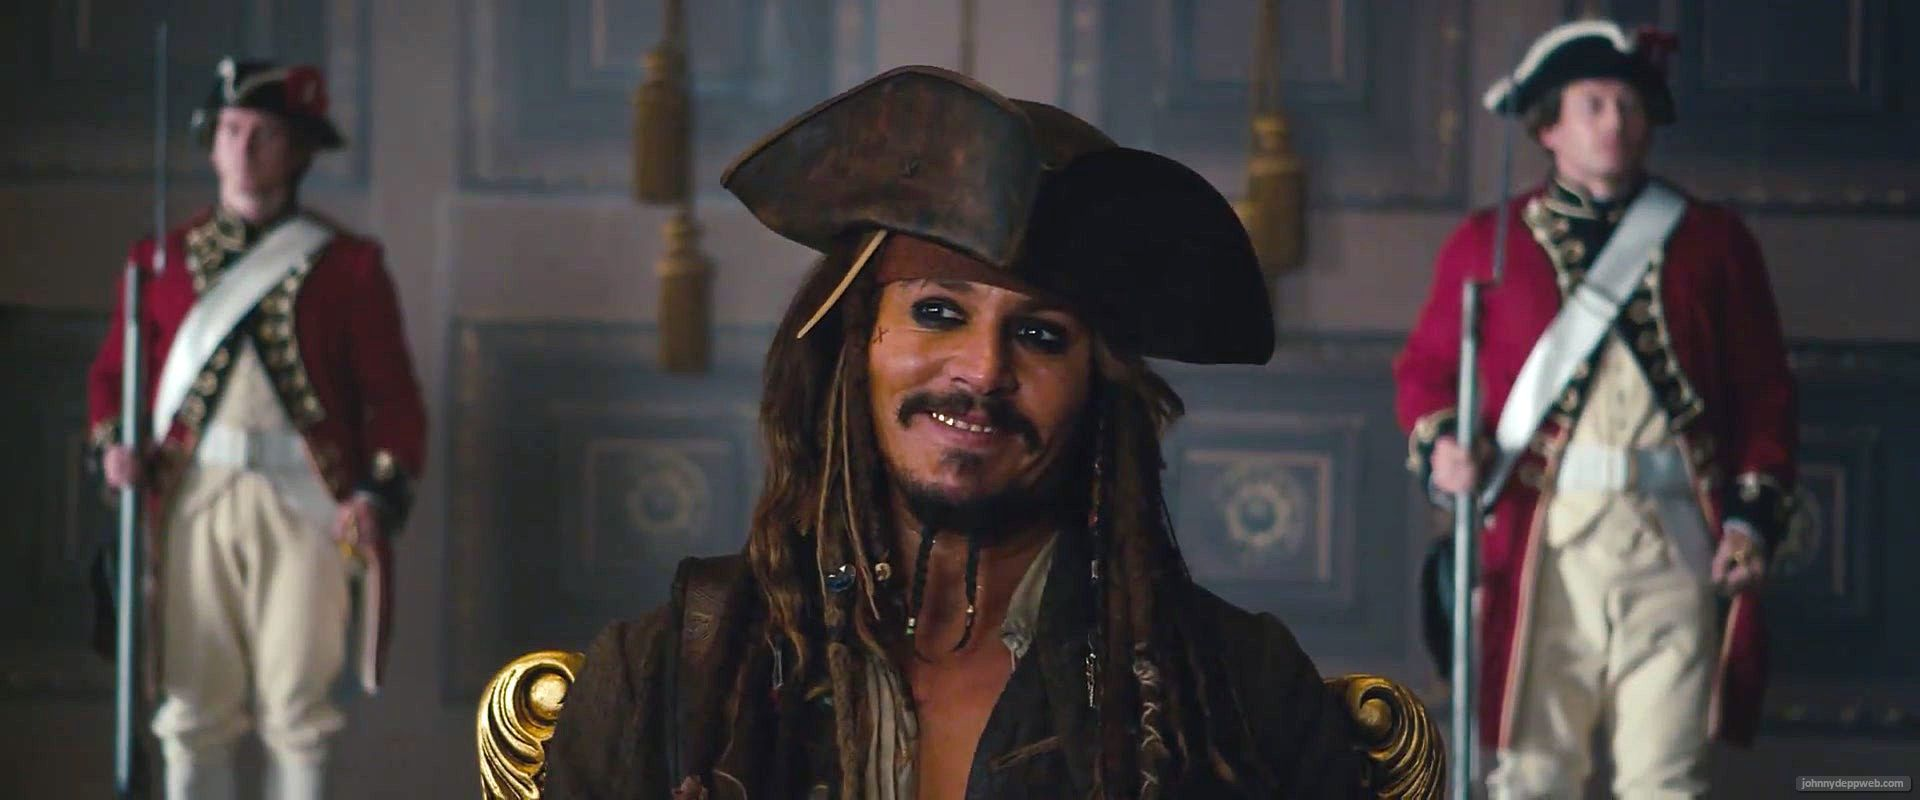 Pirates of the caribbean lez sex stories porncraft streaming